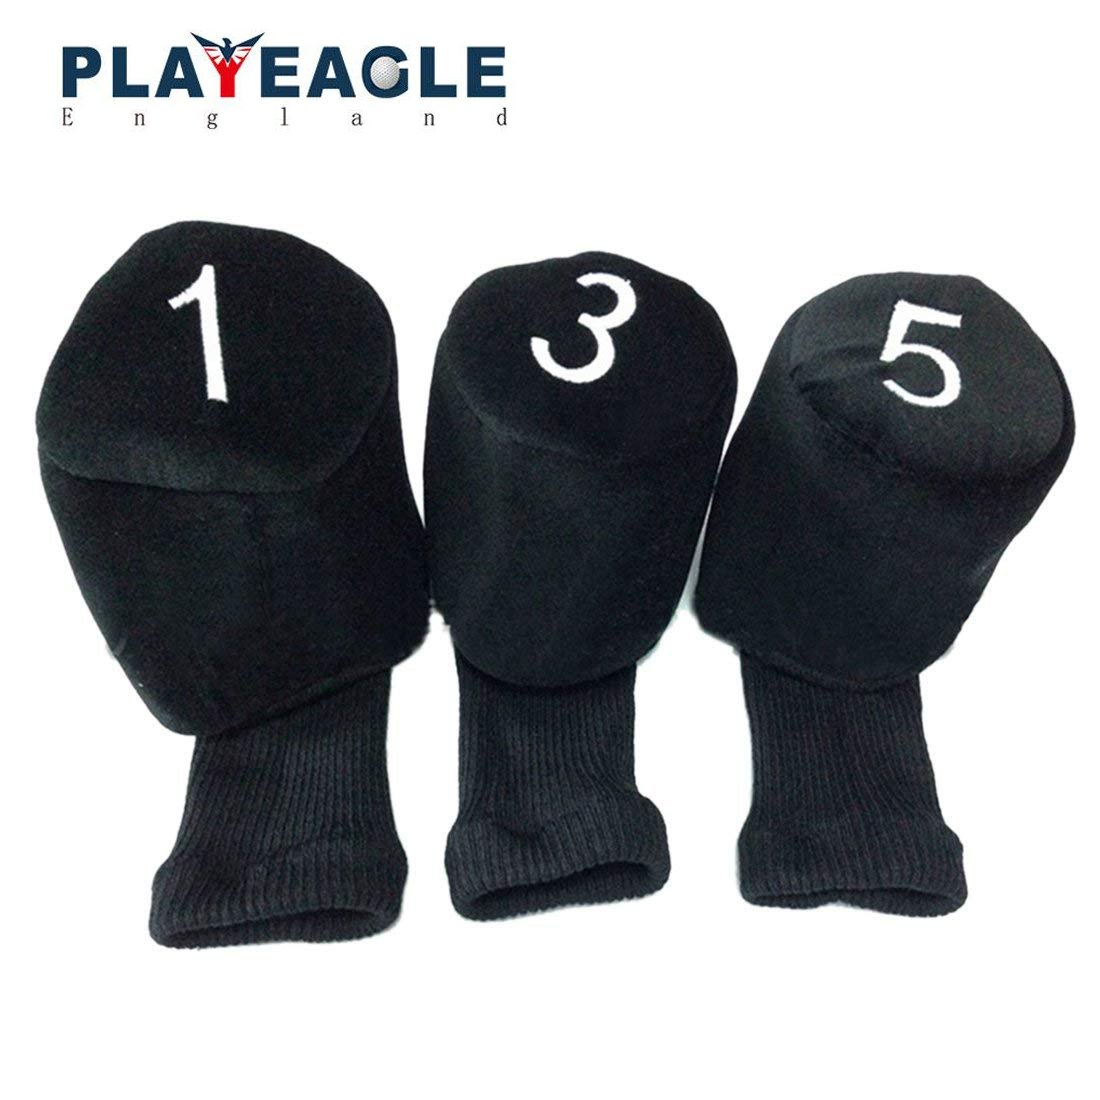 PLAYEAGLE 3pcs/set Knitted Pom Pom Sock Golf Wooden Headcover 1 3 5 Head Covers for Golf Dirver/Fairway Golf Club Headcovers Accessories